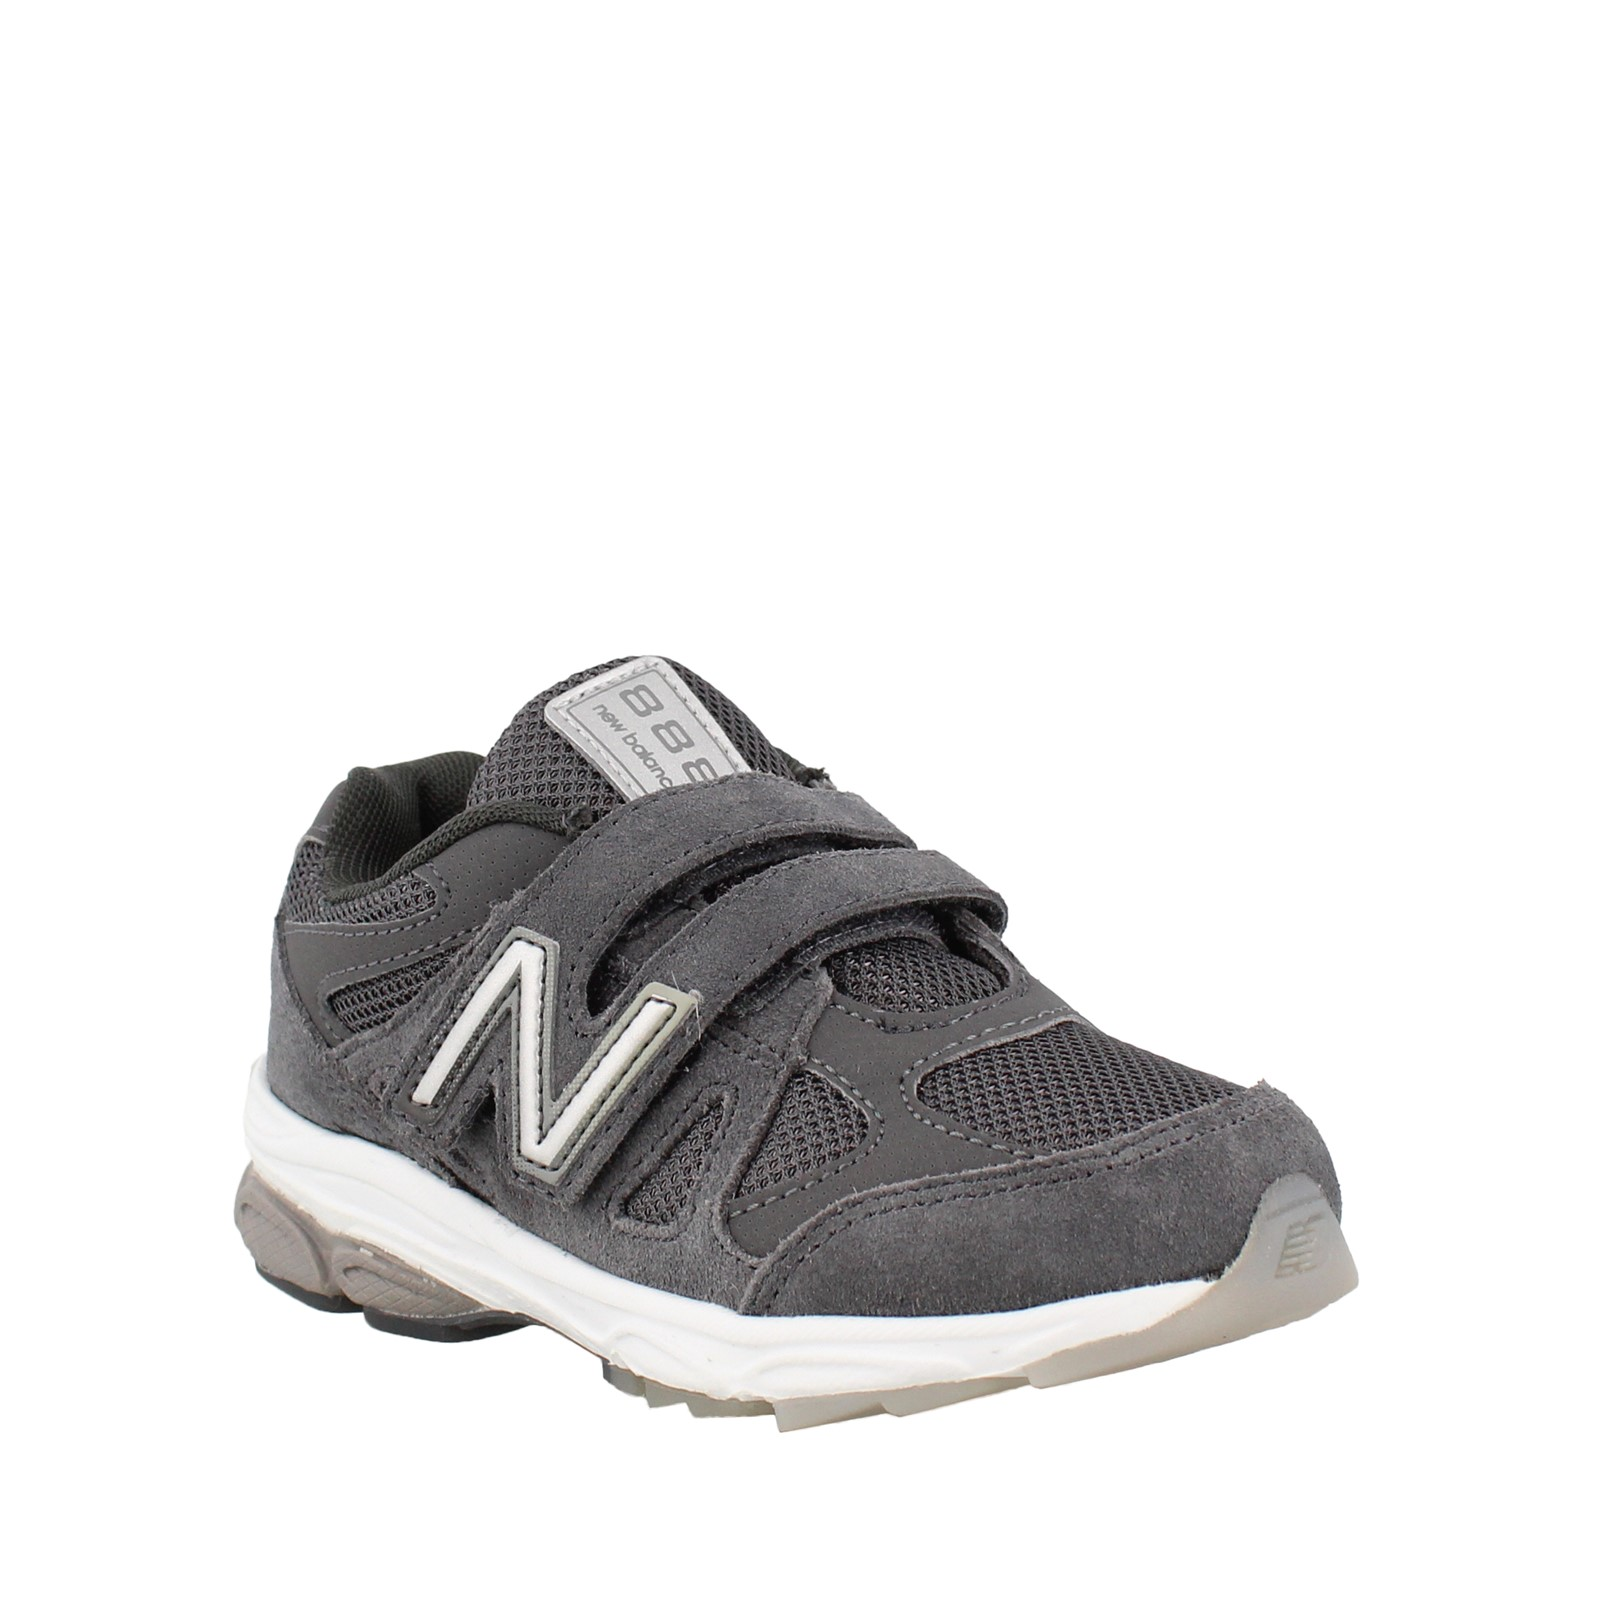 świeże style przejść do trybu online 2018 buty Boy's New Balance, 888 Hook and Loop Athletic Sneaker